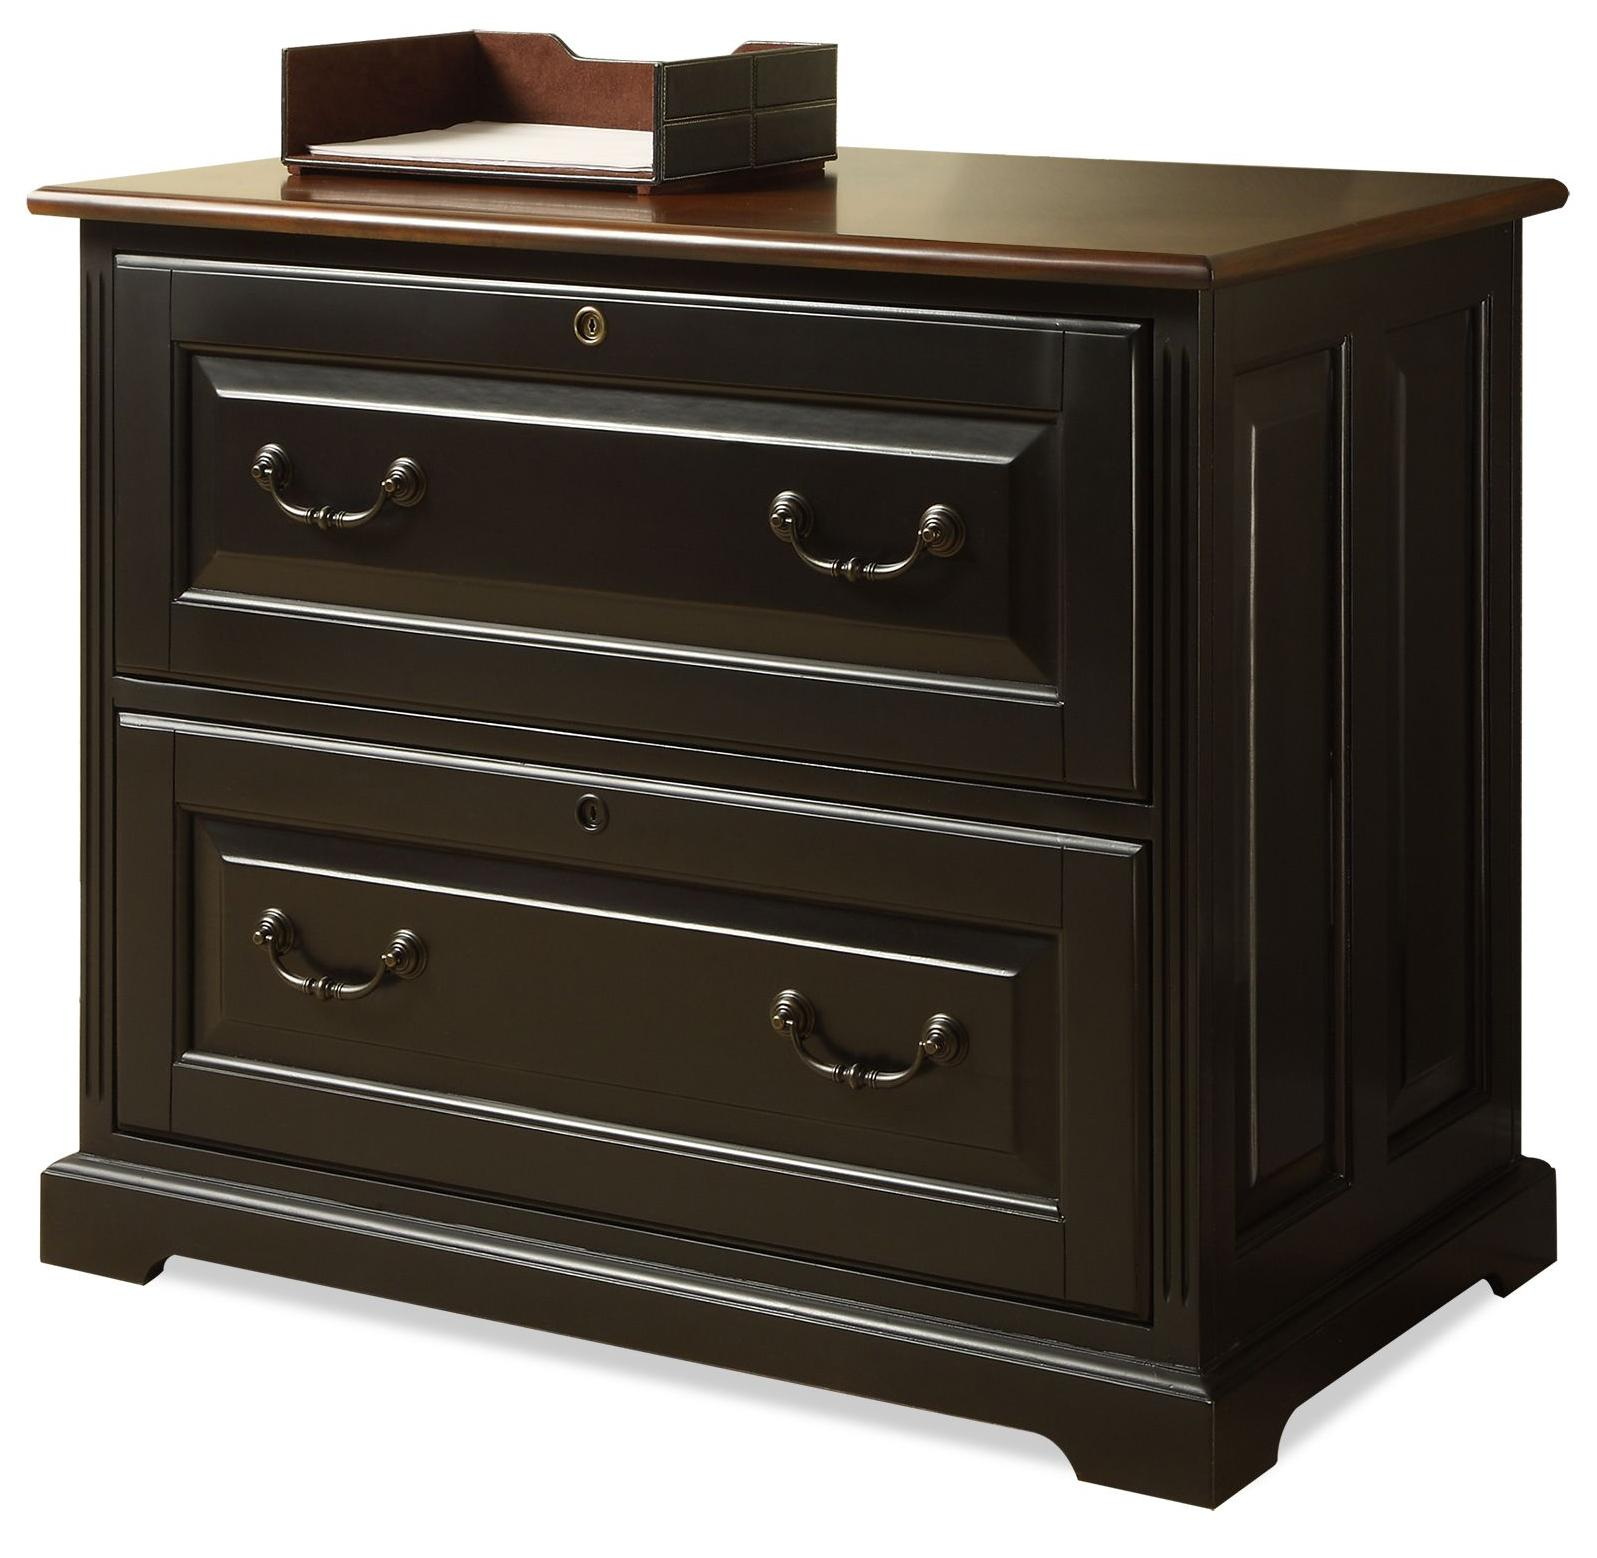 cabinets blackcherry furniture inside agreeable file cabinet coaster drawer tate fine wooden